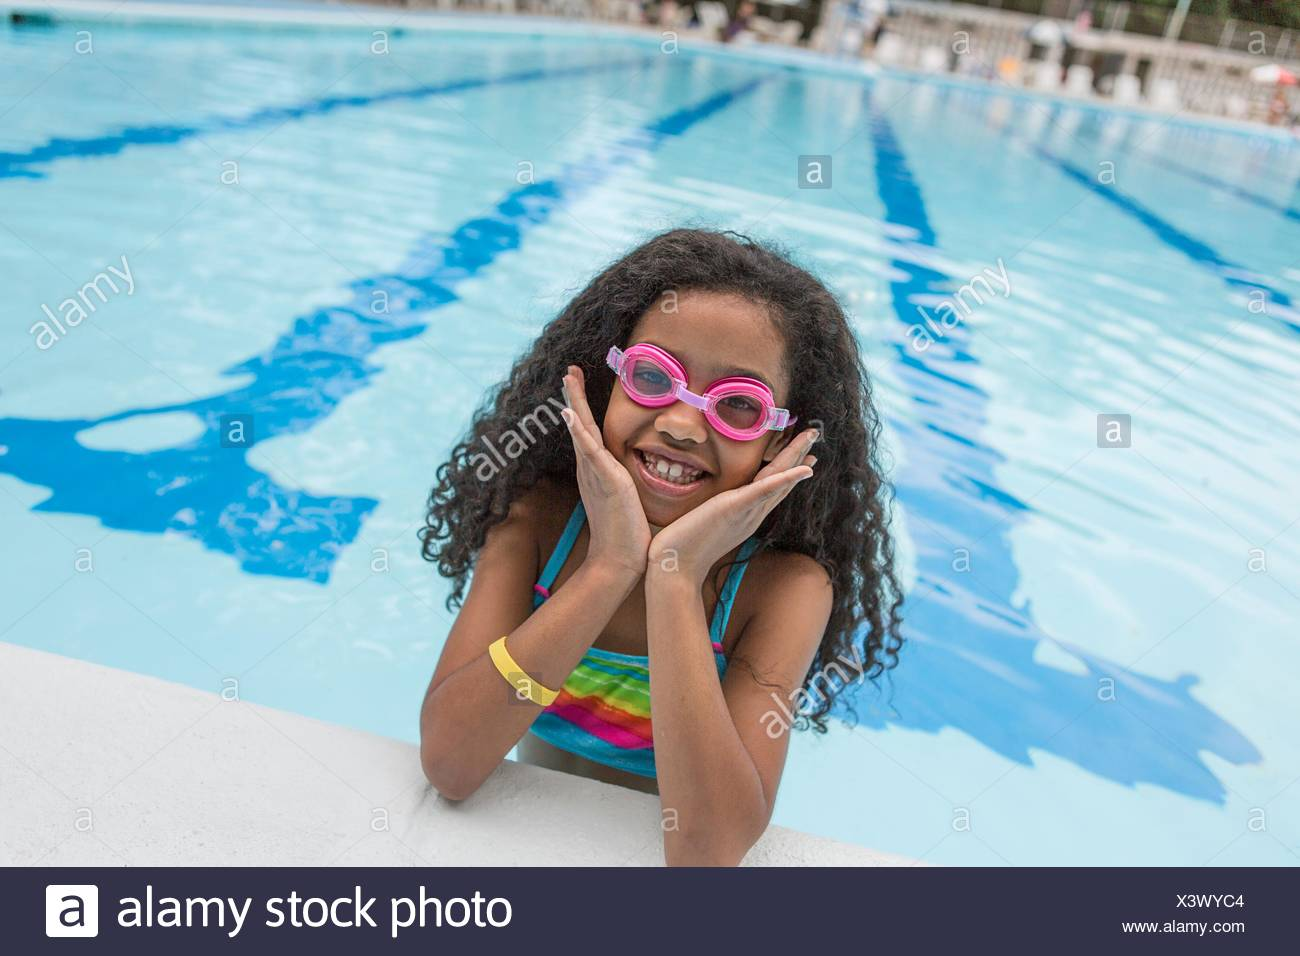 Portrait of Girl in swimming pool portant des lunettes de natation, smiling at camera Photo Stock